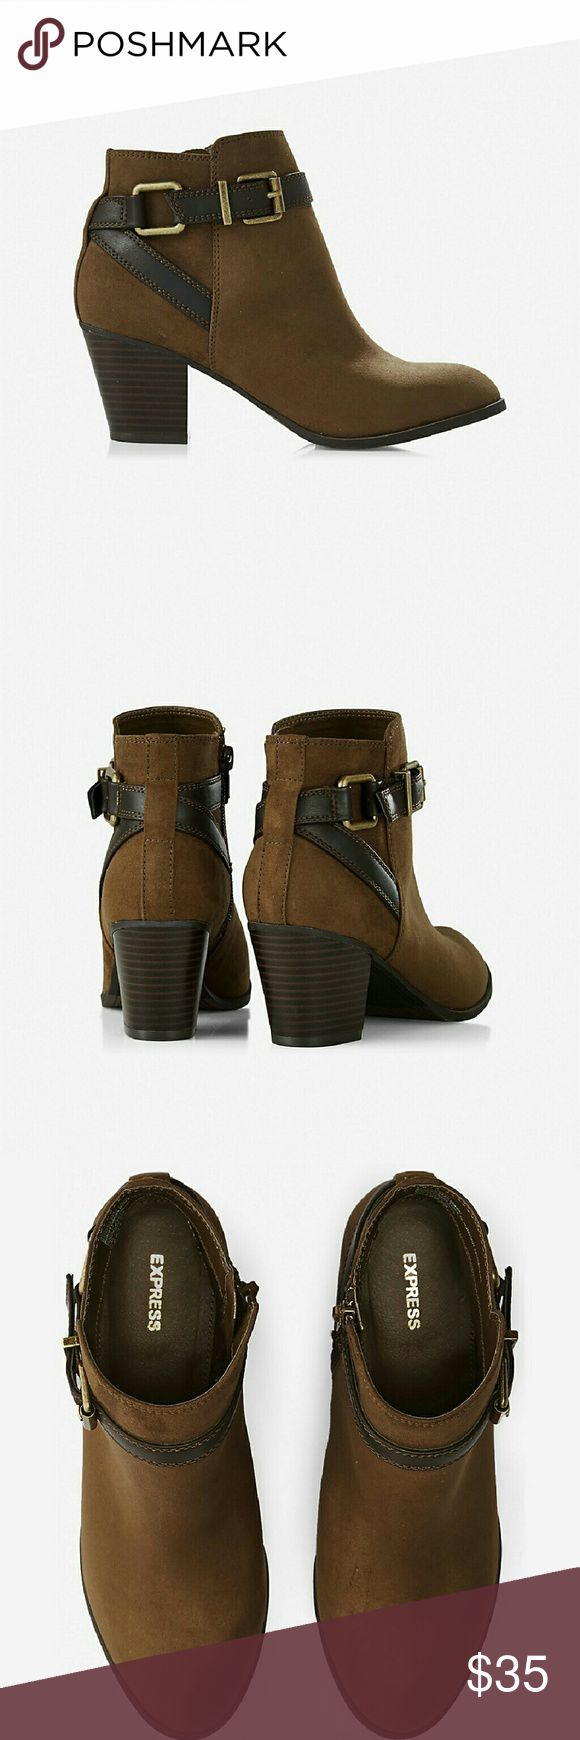 Express buckle ankle boots Express buckle ankle boots. Worn once. Express Shoes Ankle Boots & Booties